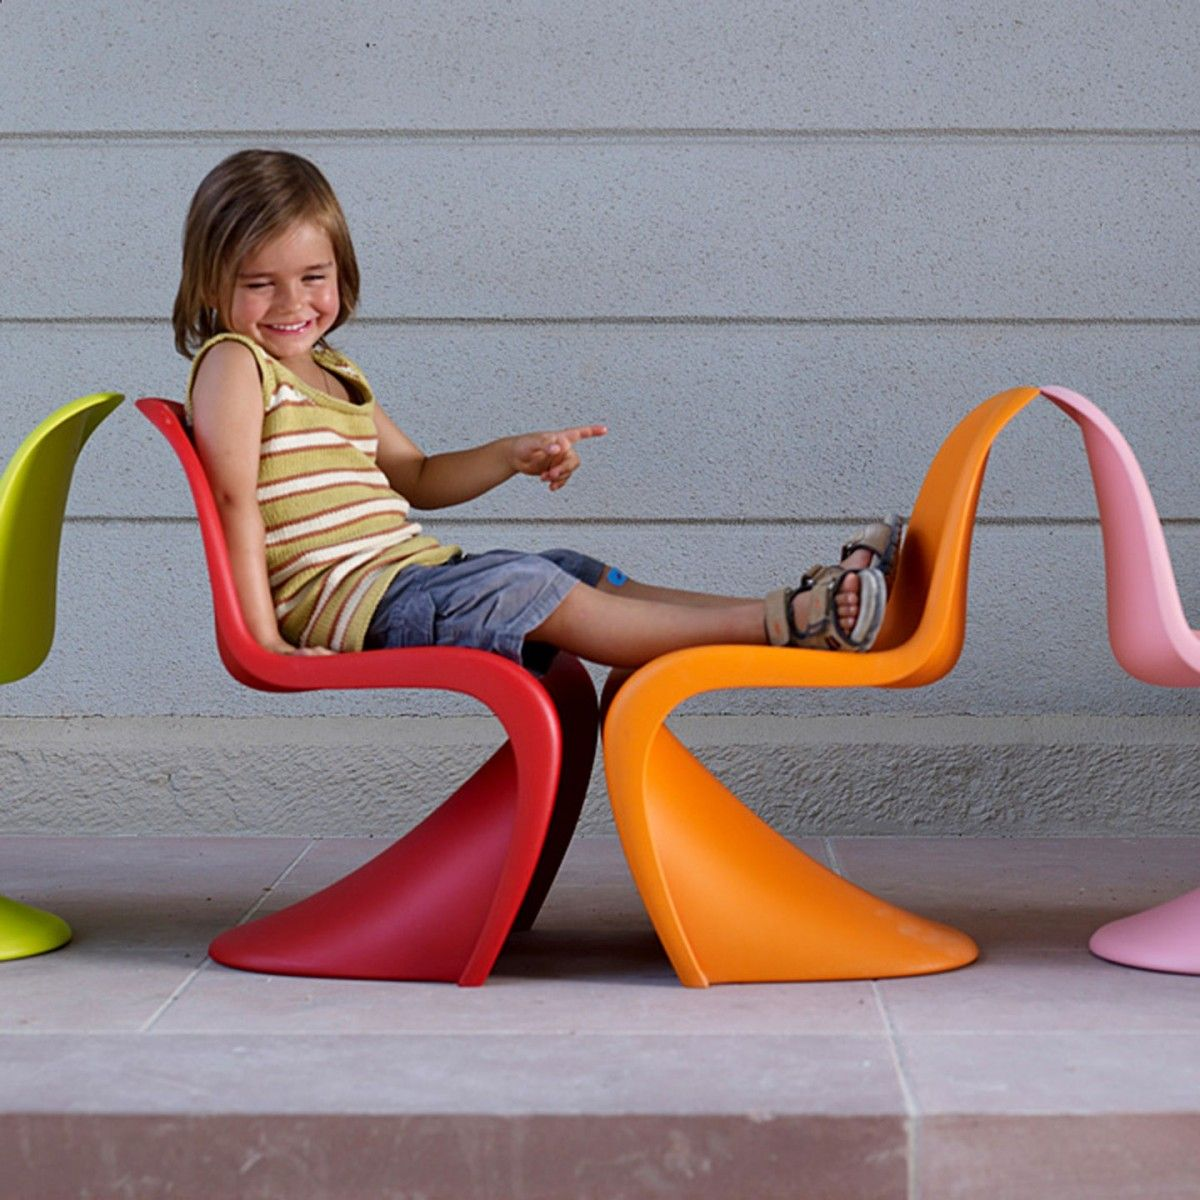 Explore Panton Chair, Toddler Rooms, And More!